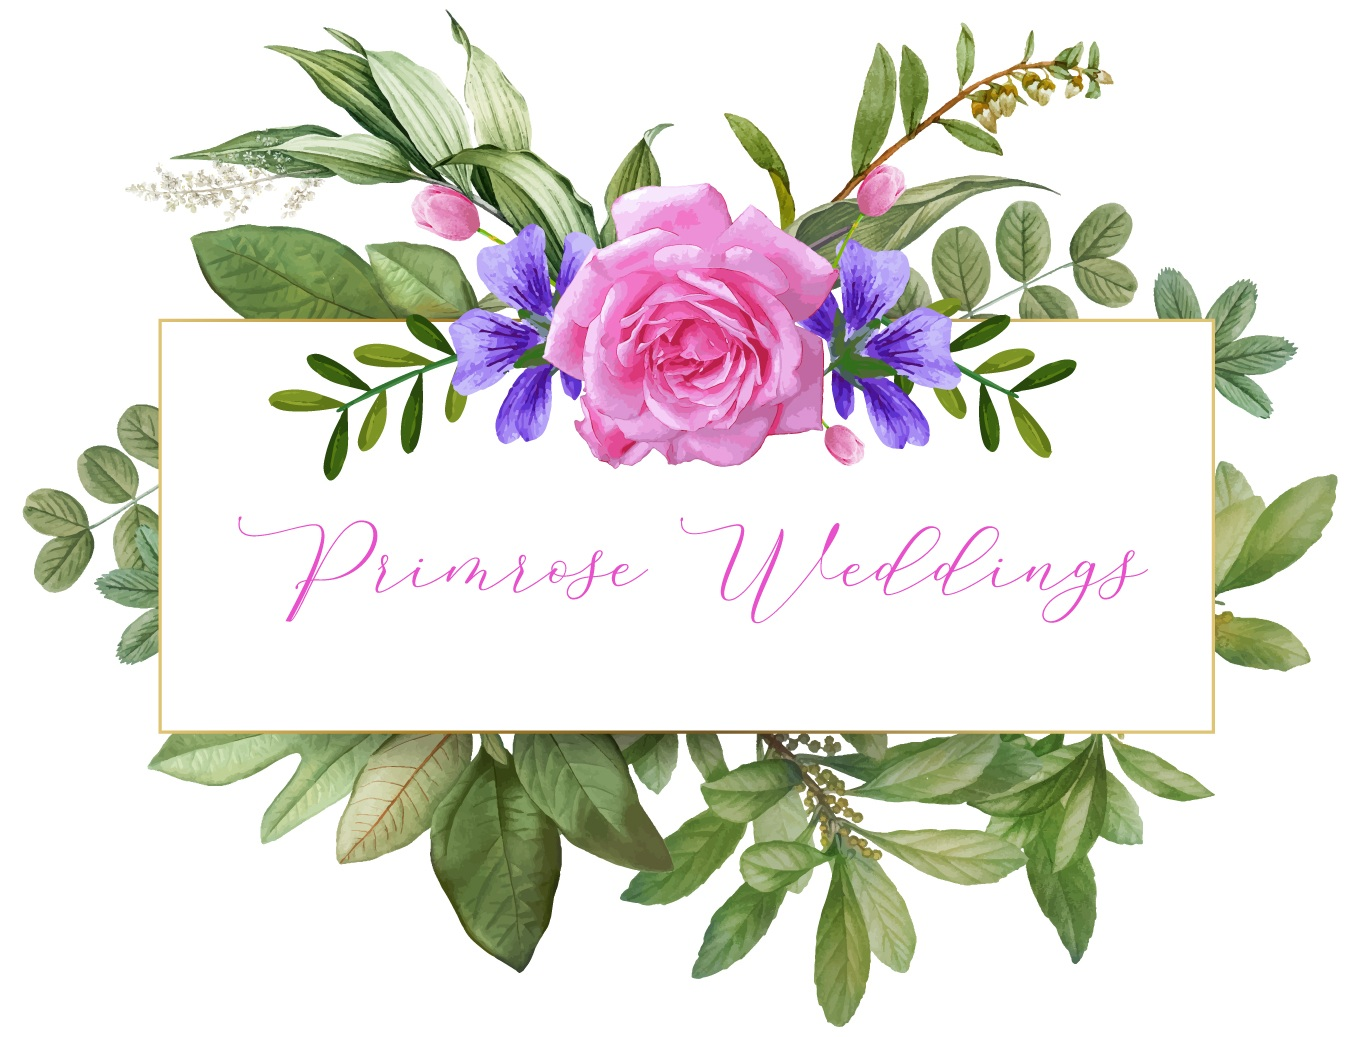 Primrose Weddings